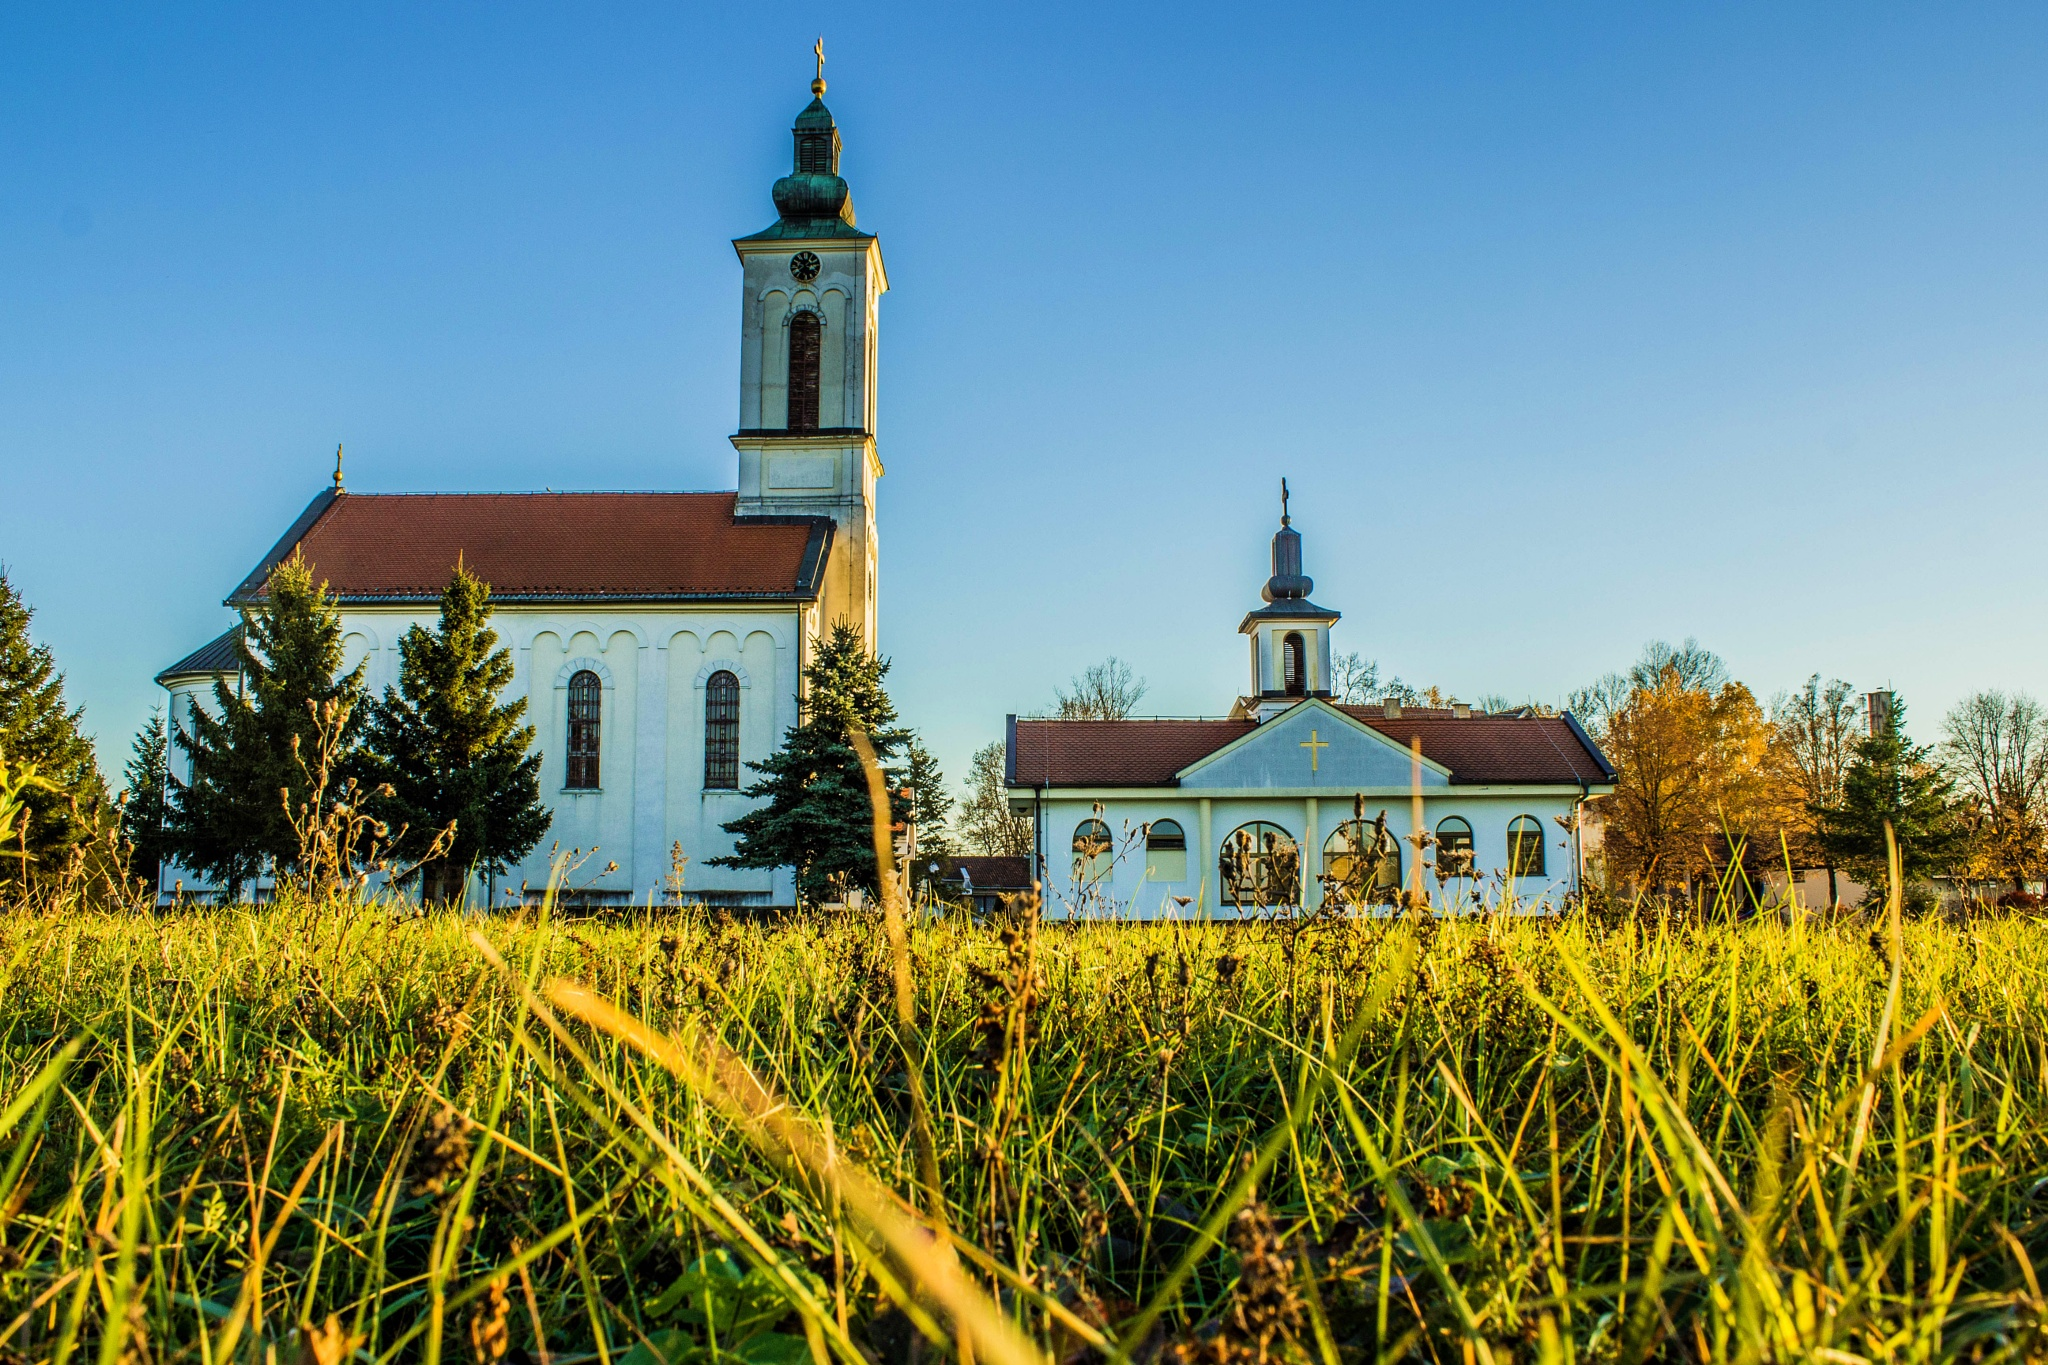 Church - Bosnia and Herzegovina by alexerne